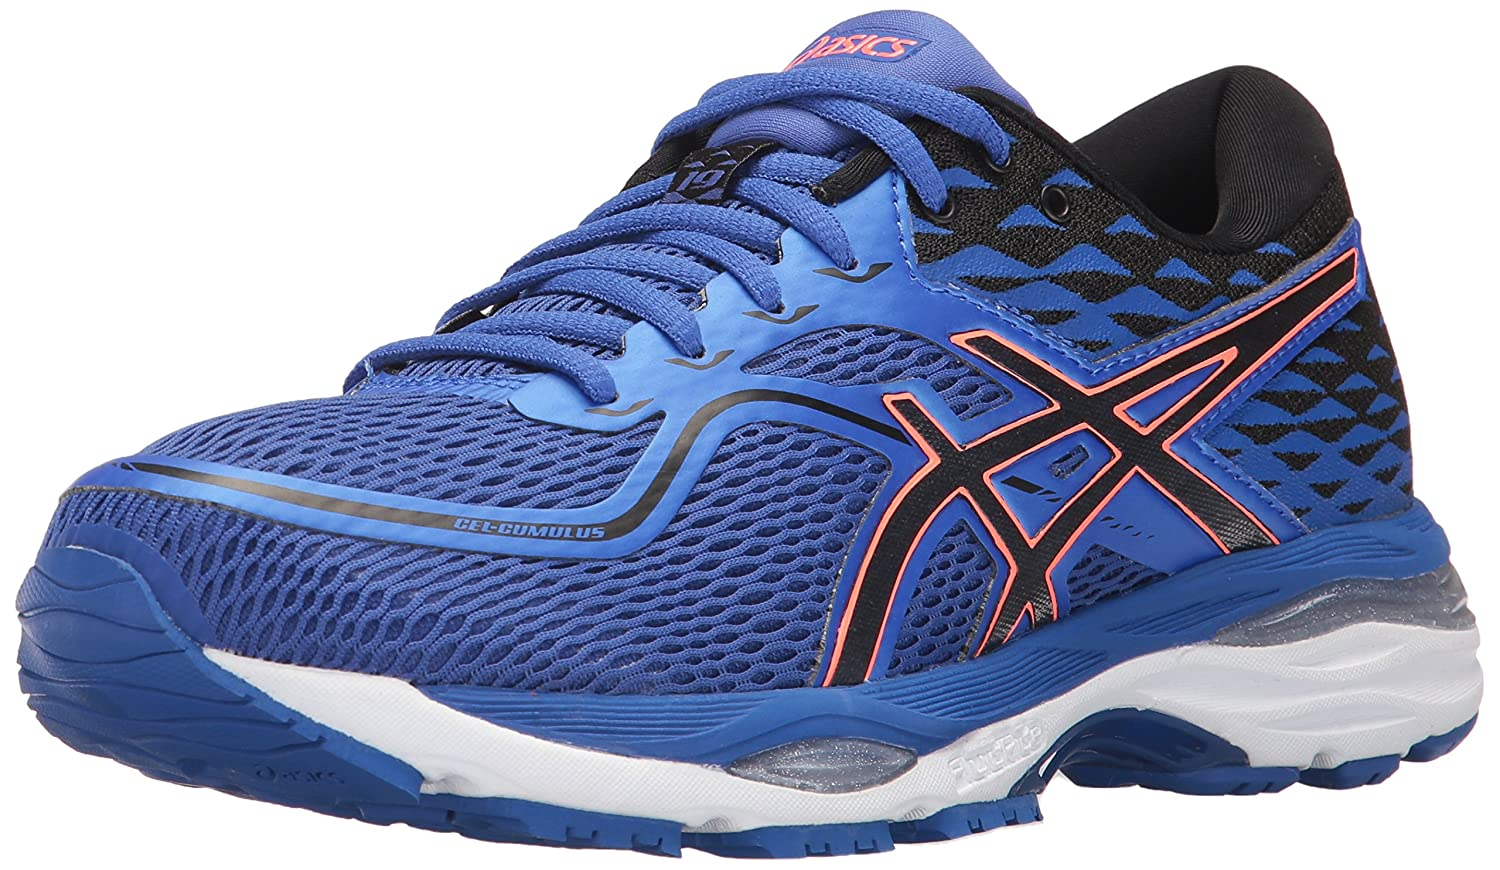 ASICS Women's Gel-Cumulus 19 Running Shoe B01N3U1GT1 7.5 2A US|Blue Purple/Black/Flash Coral